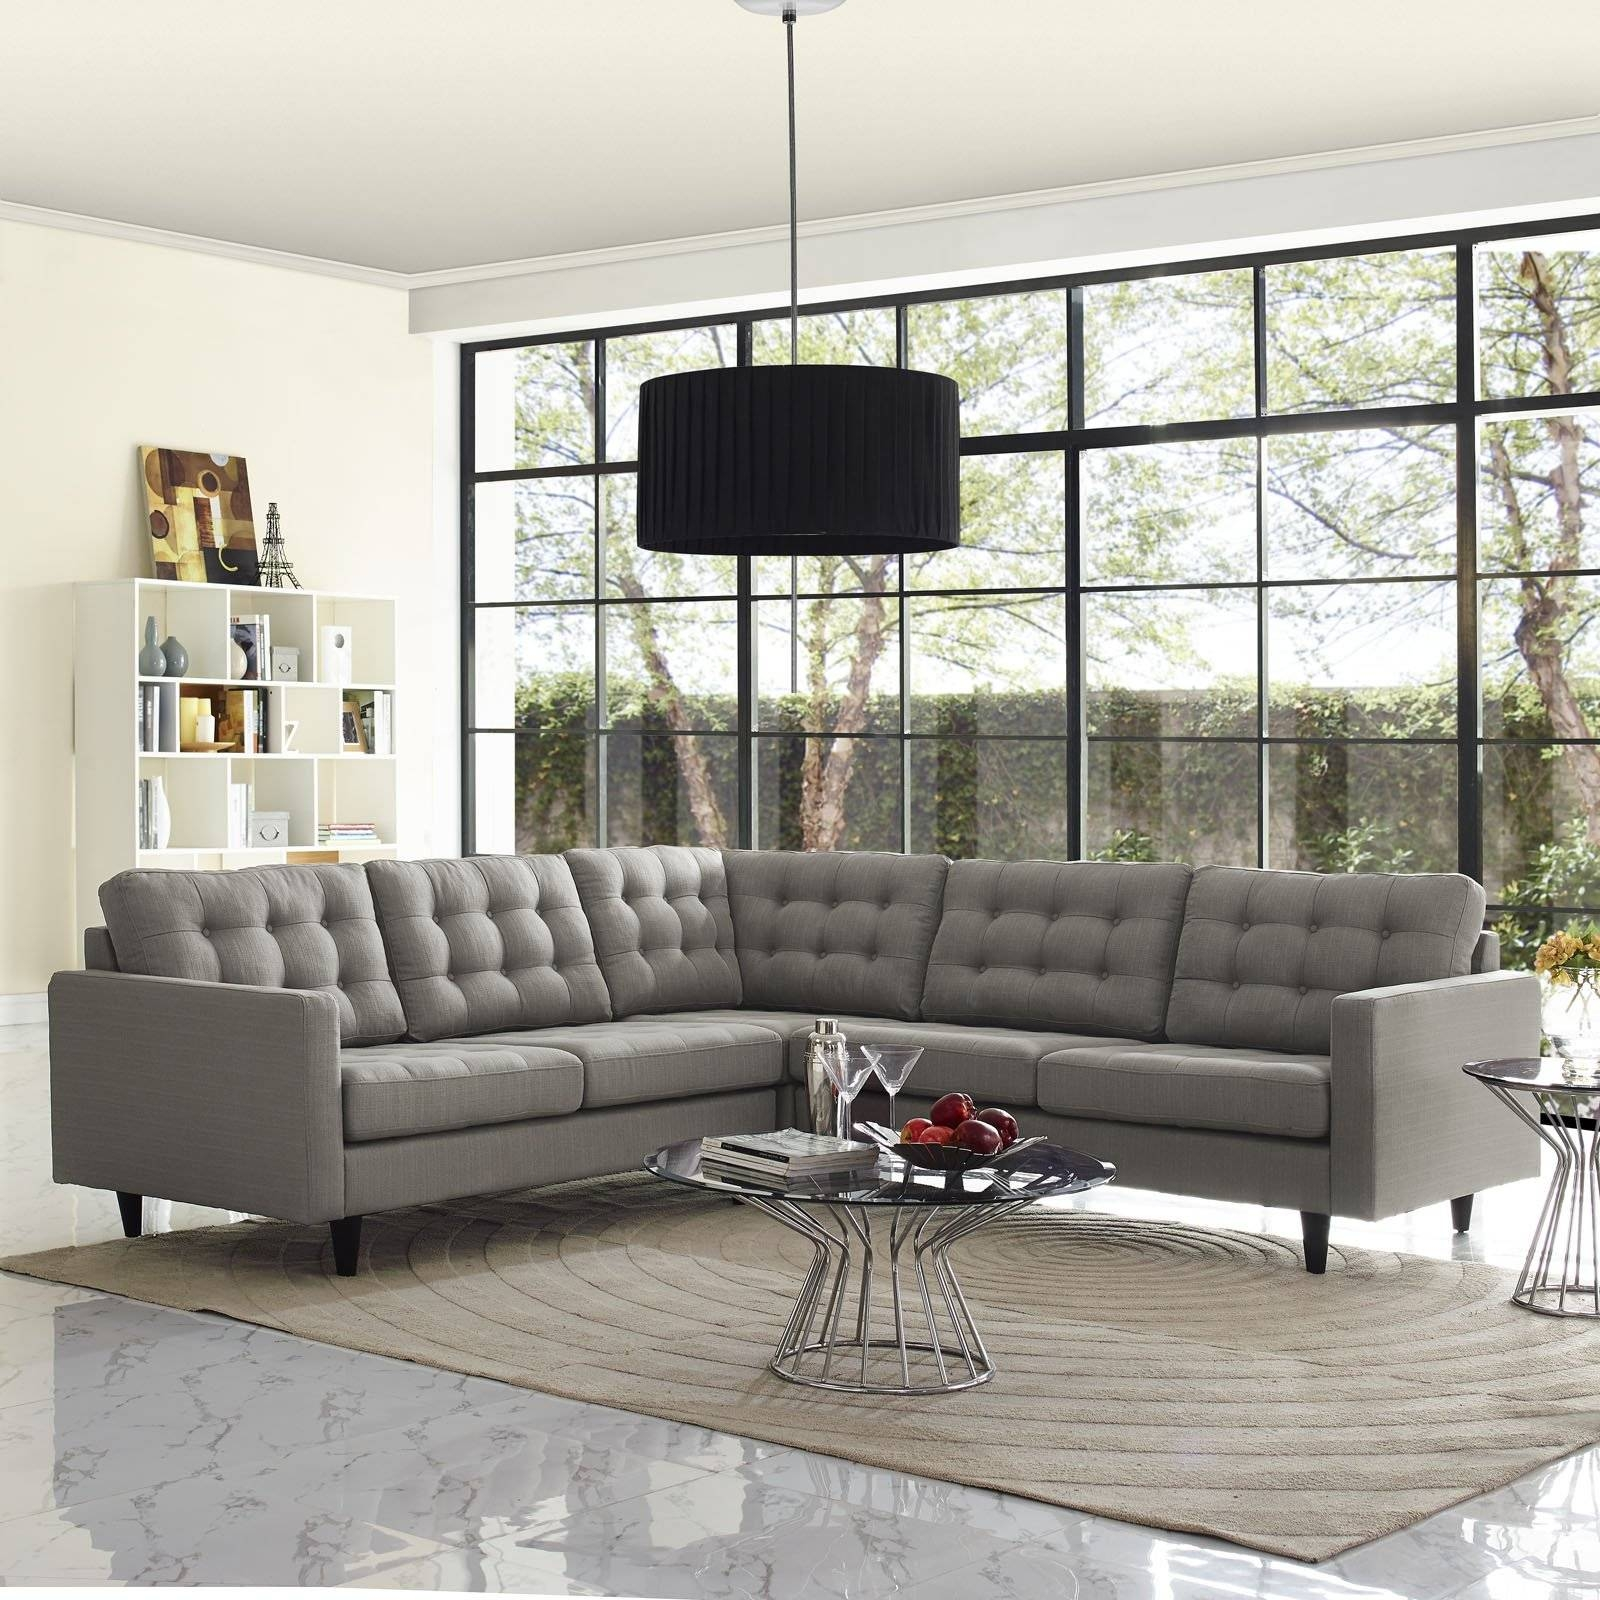 Sofas Center : 35 Incredible Tufted Sectional Sofa Picture Design regarding Tufted Sectional Sofa With Chaise (Image 24 of 30)